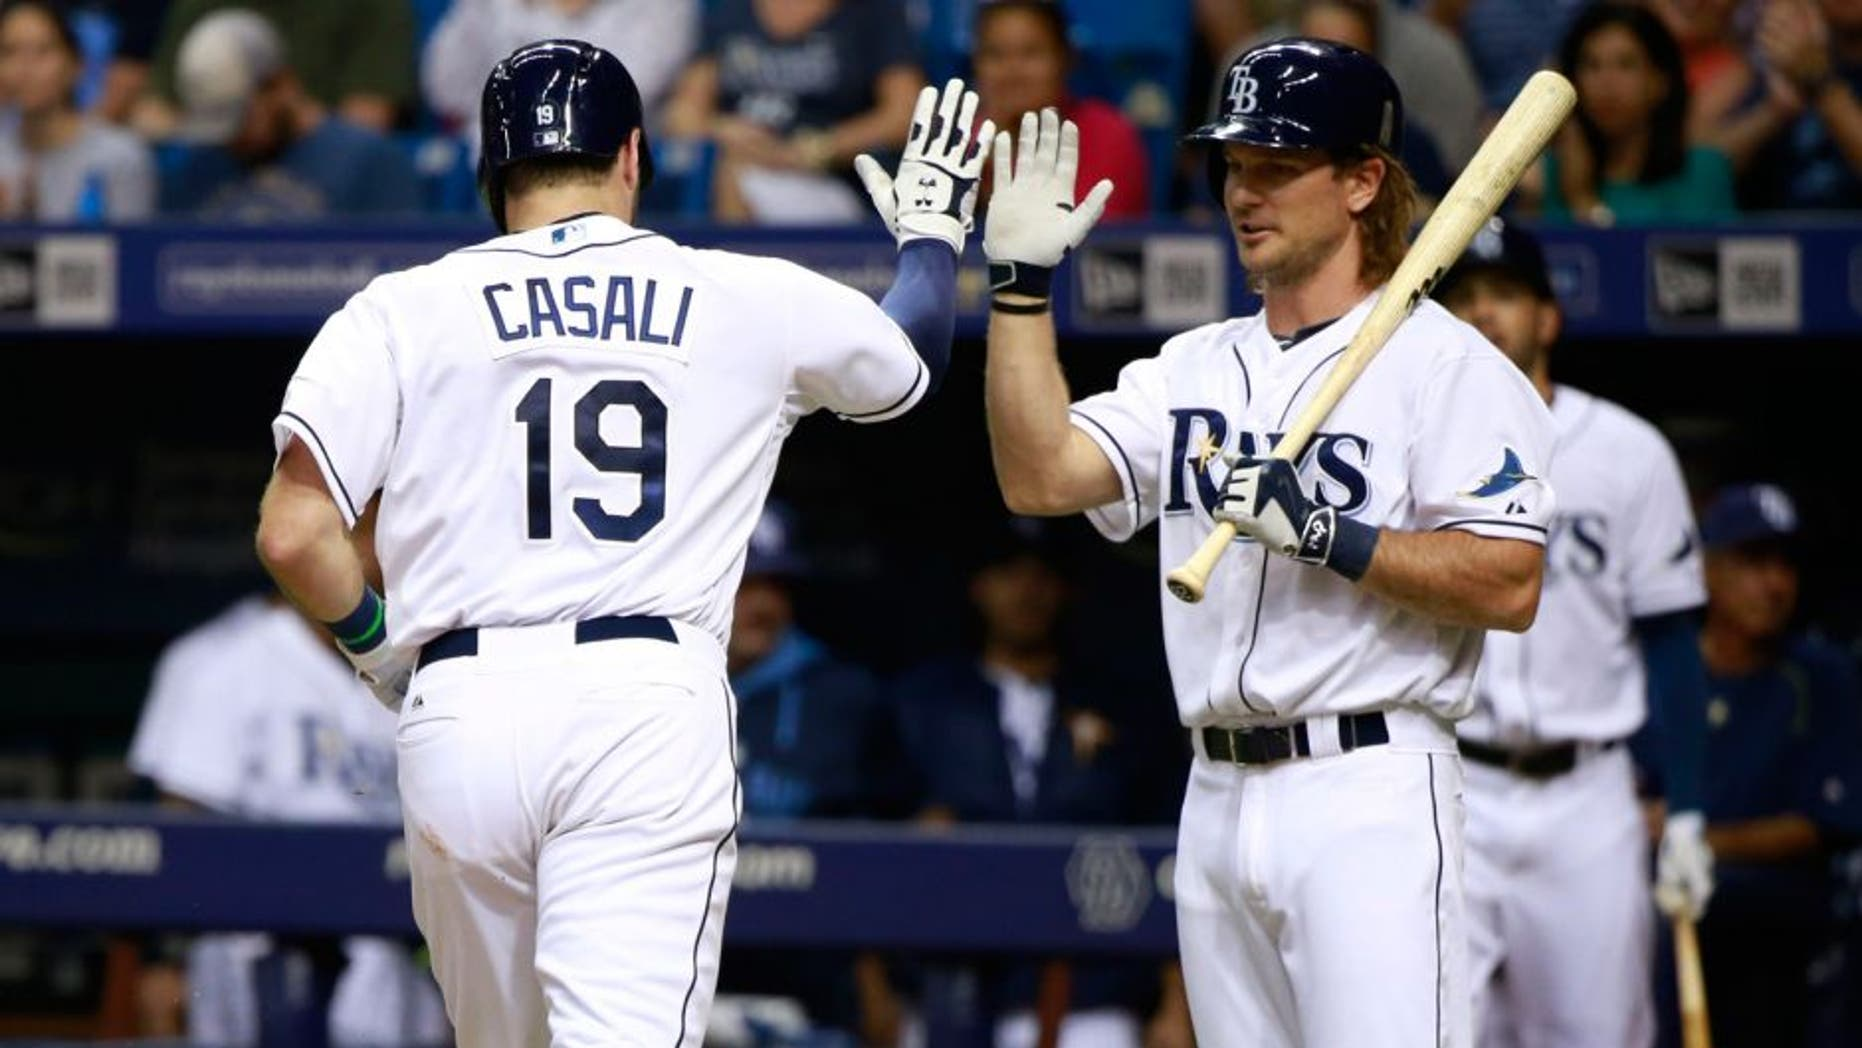 Jul 27, 2015; St. Petersburg, FL, USA; Tampa Bay Rays catcher Curt Casali (19) is congratulated by designated hitter John Jaso (28) after he hit a solo home run during the third inning against the Detroit Tigers at Tropicana Field. Mandatory Credit: Kim Klement-USA TODAY Sports